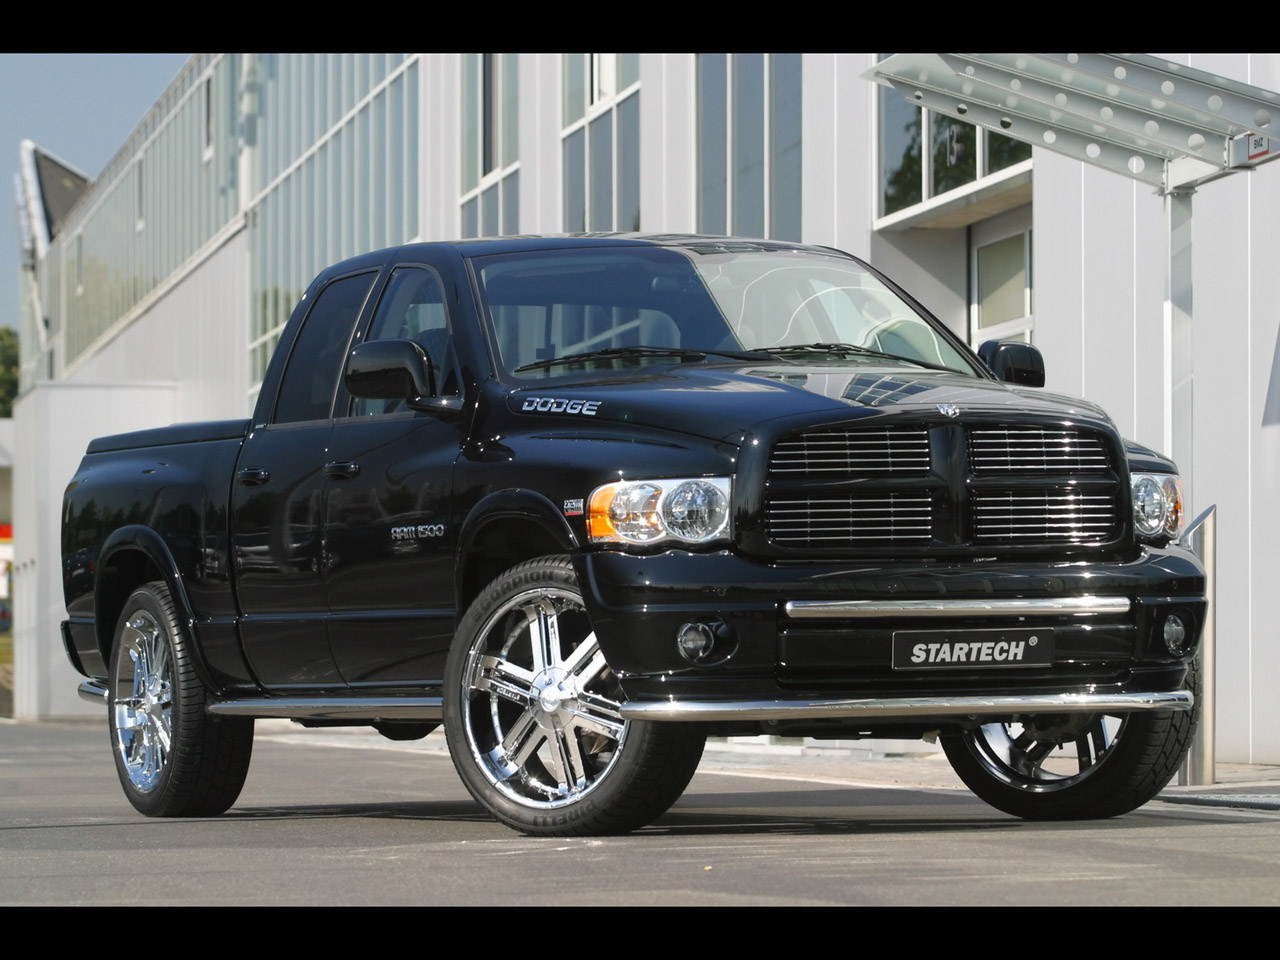 Dodge Ram Pickup 1500 interior #1